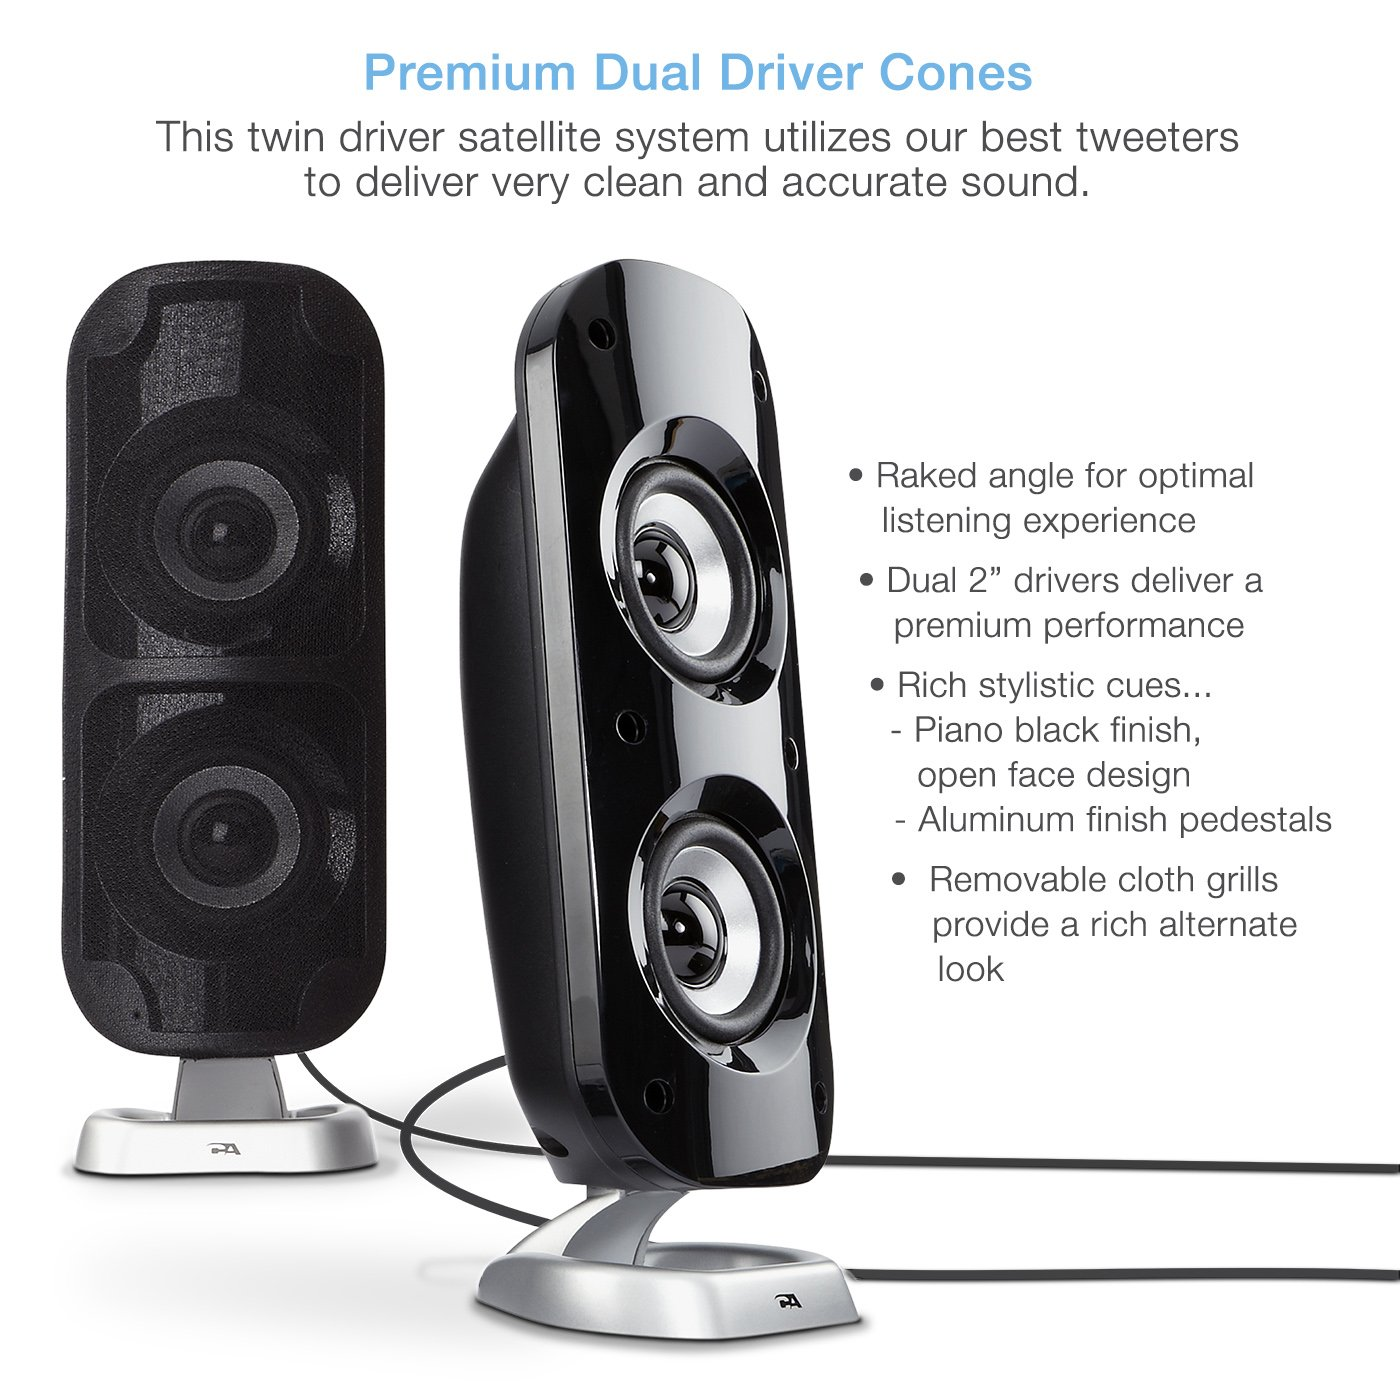 Cyber Acoustics High Power 2.1 Subwoofer Speaker System with 80W of Power – Perfect for Gaming, Movies, Music, and Multimedia Sound Solutions (CA-3810) by Cyber Acoustics (Image #3)